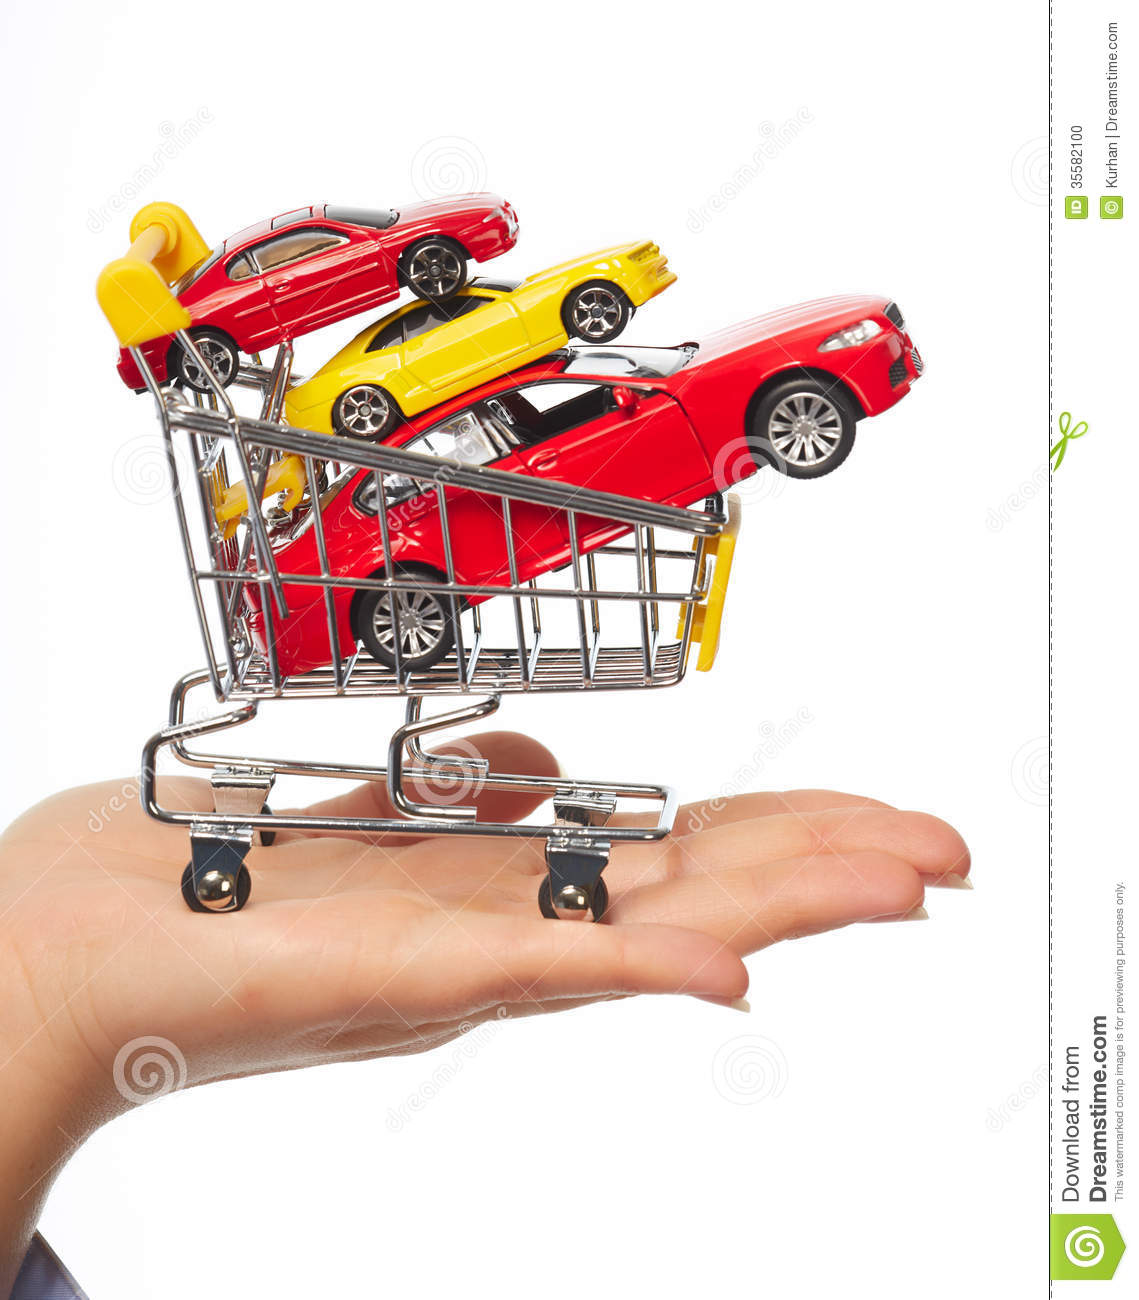 Subscription Based Car Buying